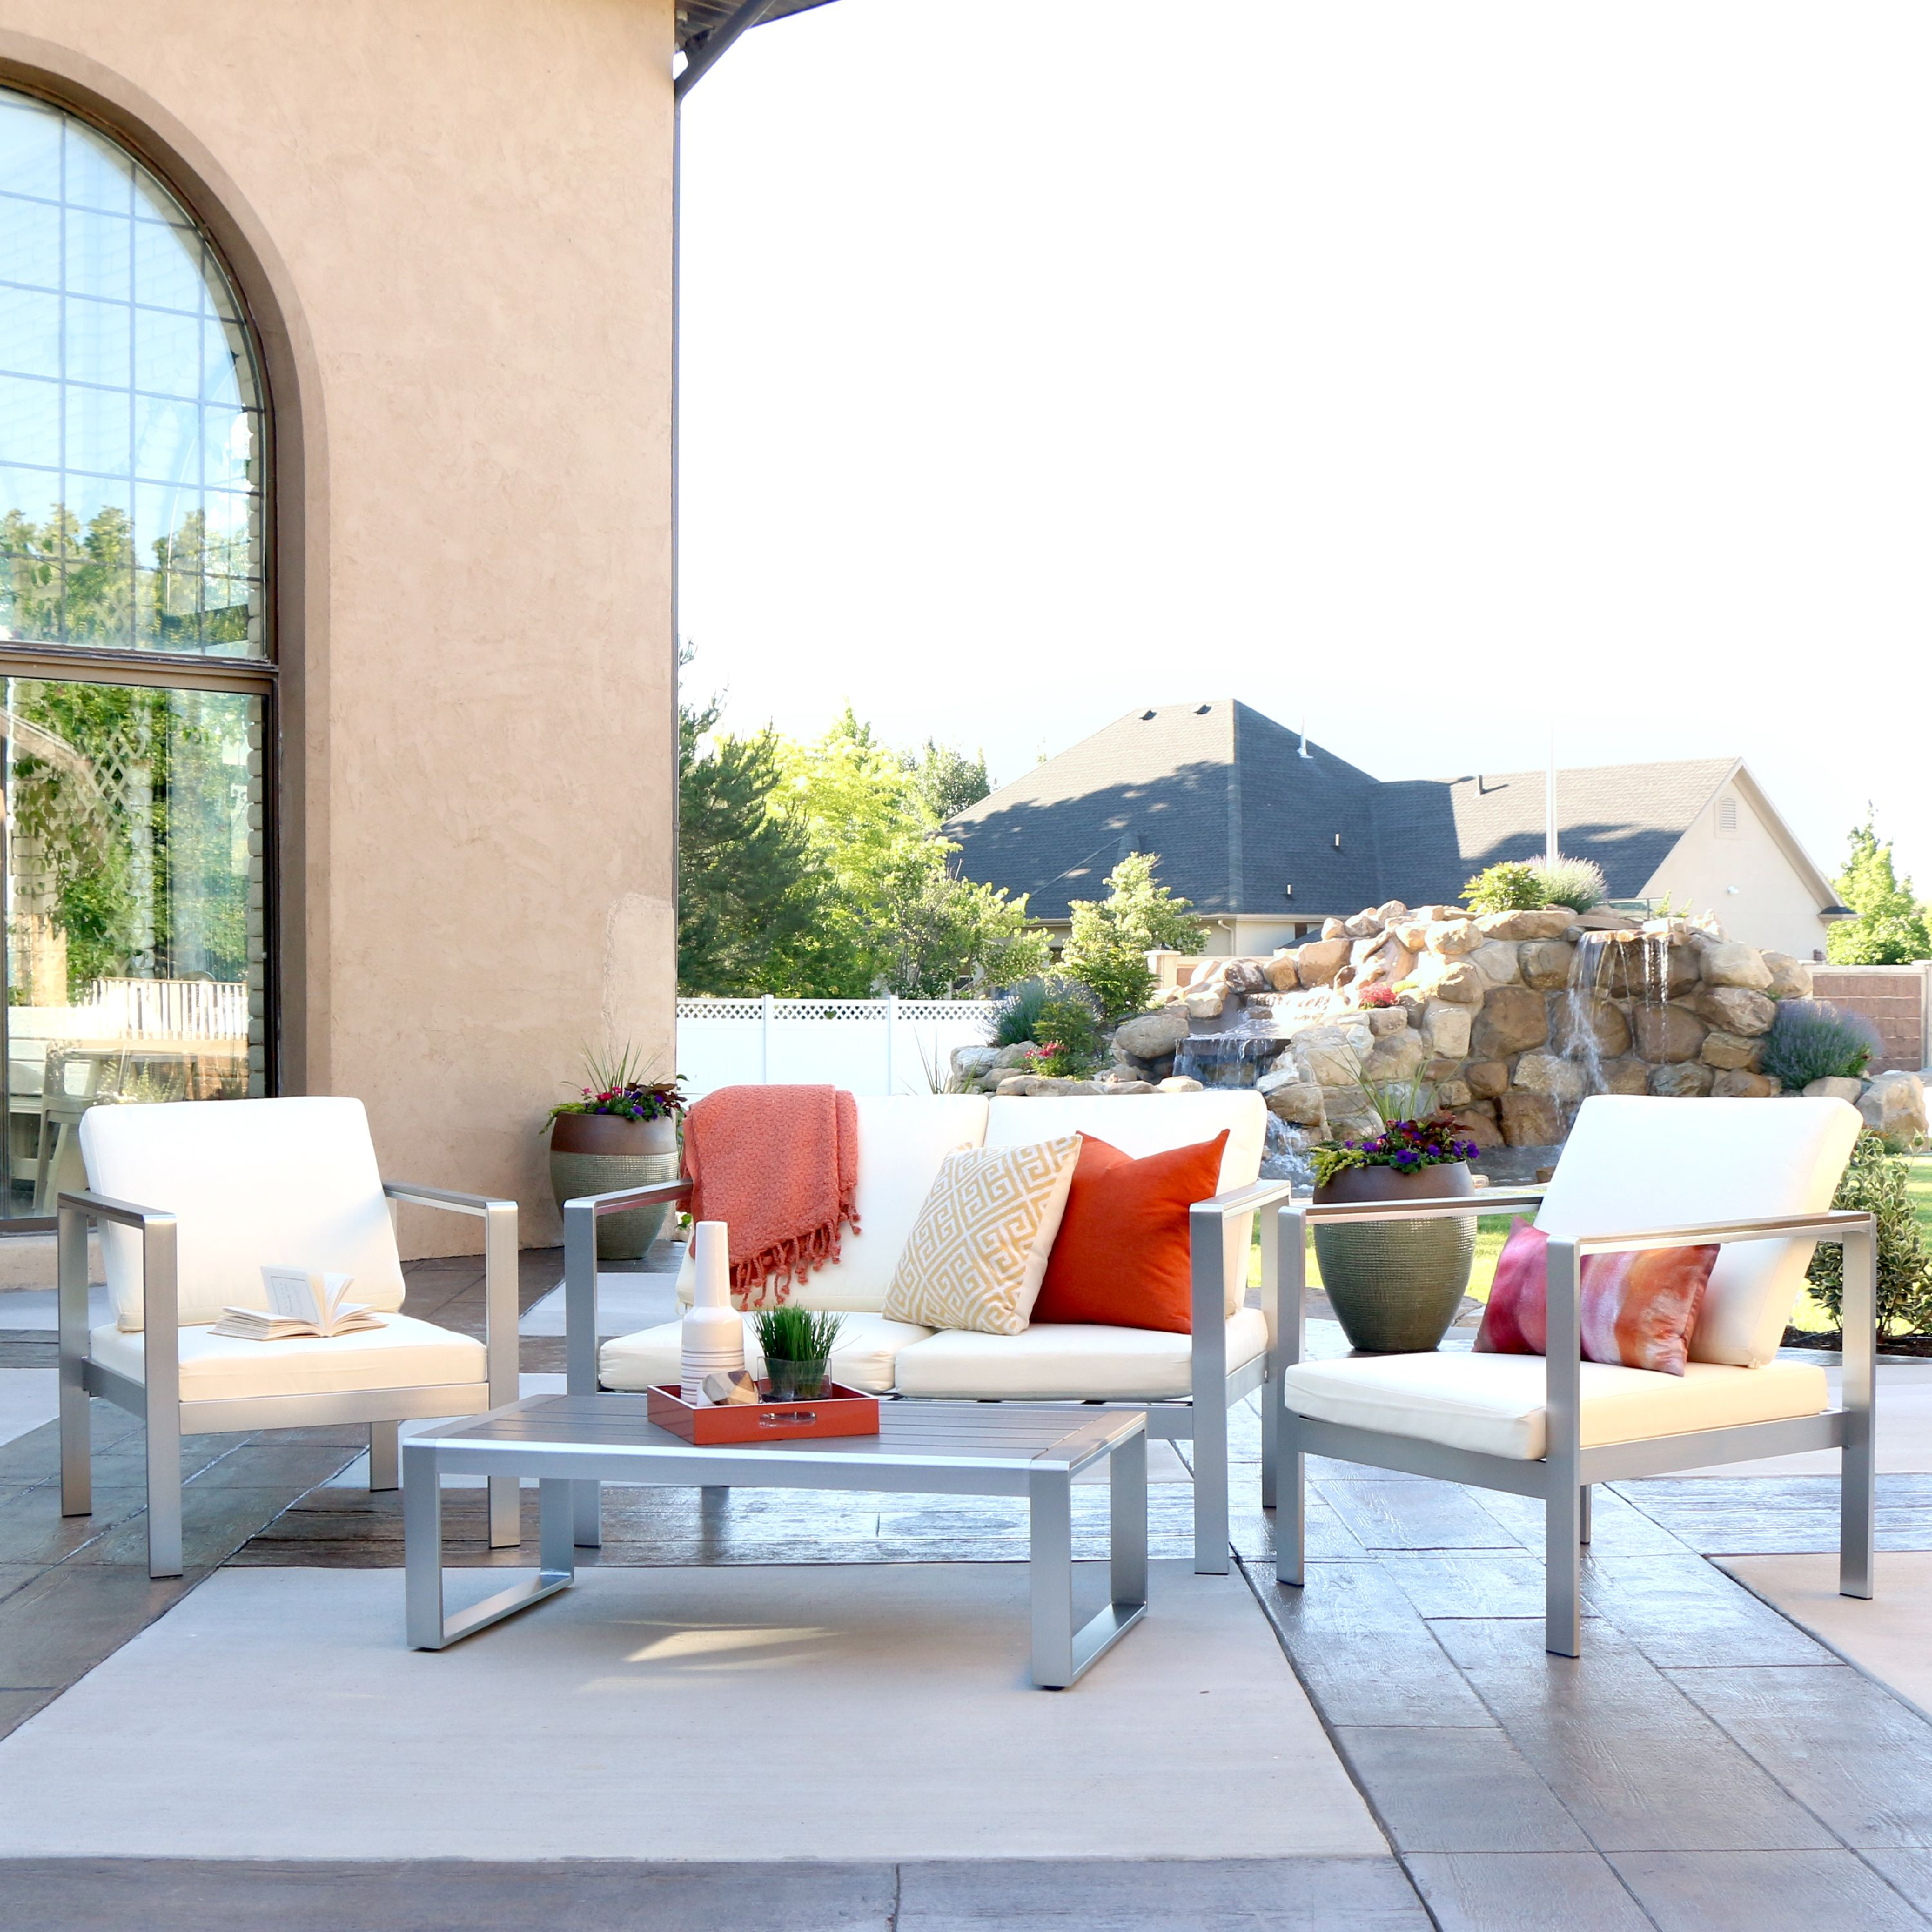 Manor Park 4-Piece Modern Aluminum Outdoor Patio Chat Set with Cushions - Silver/Espresso